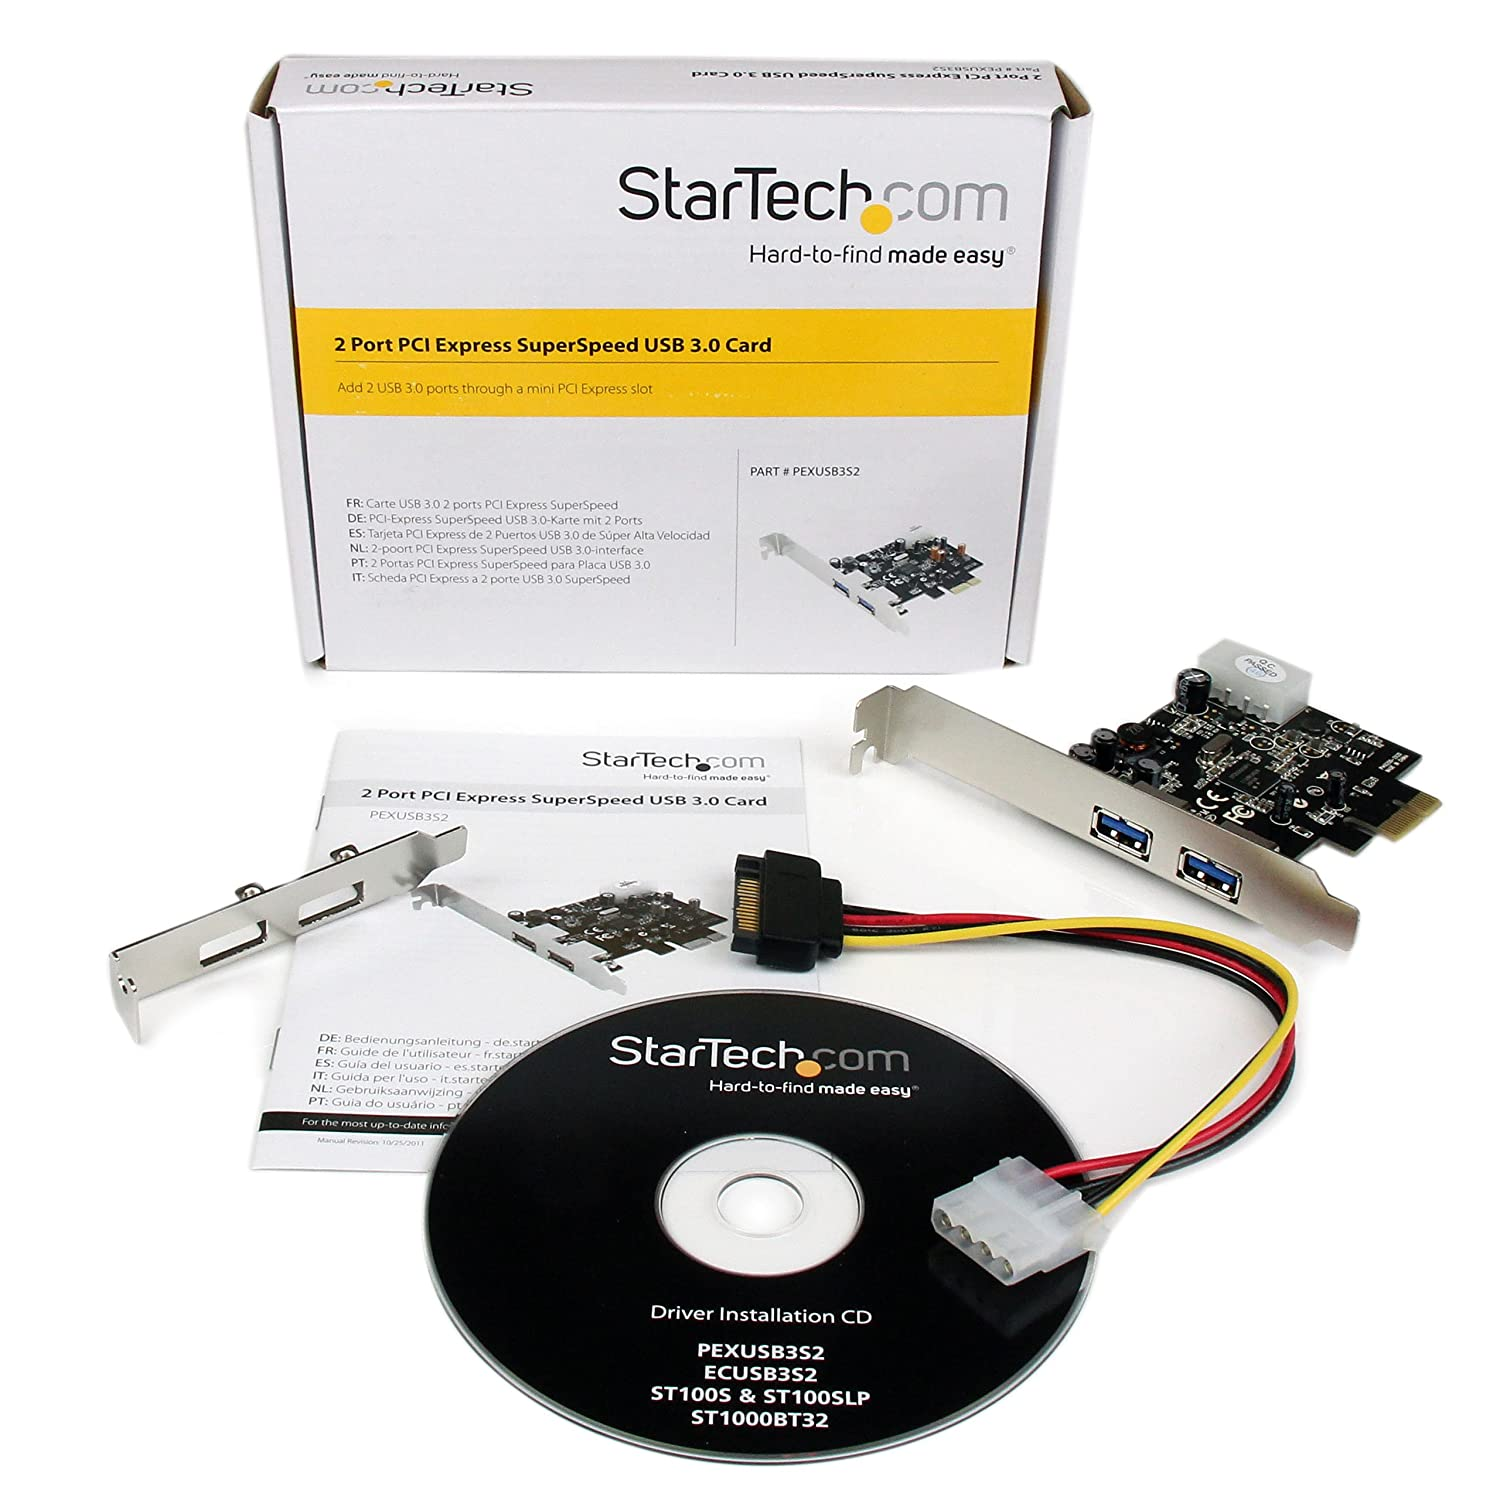 StarTech.com 2 Port PCI Express SuperSpeed USB 3.0 Card Adapter PEXUSB3S2